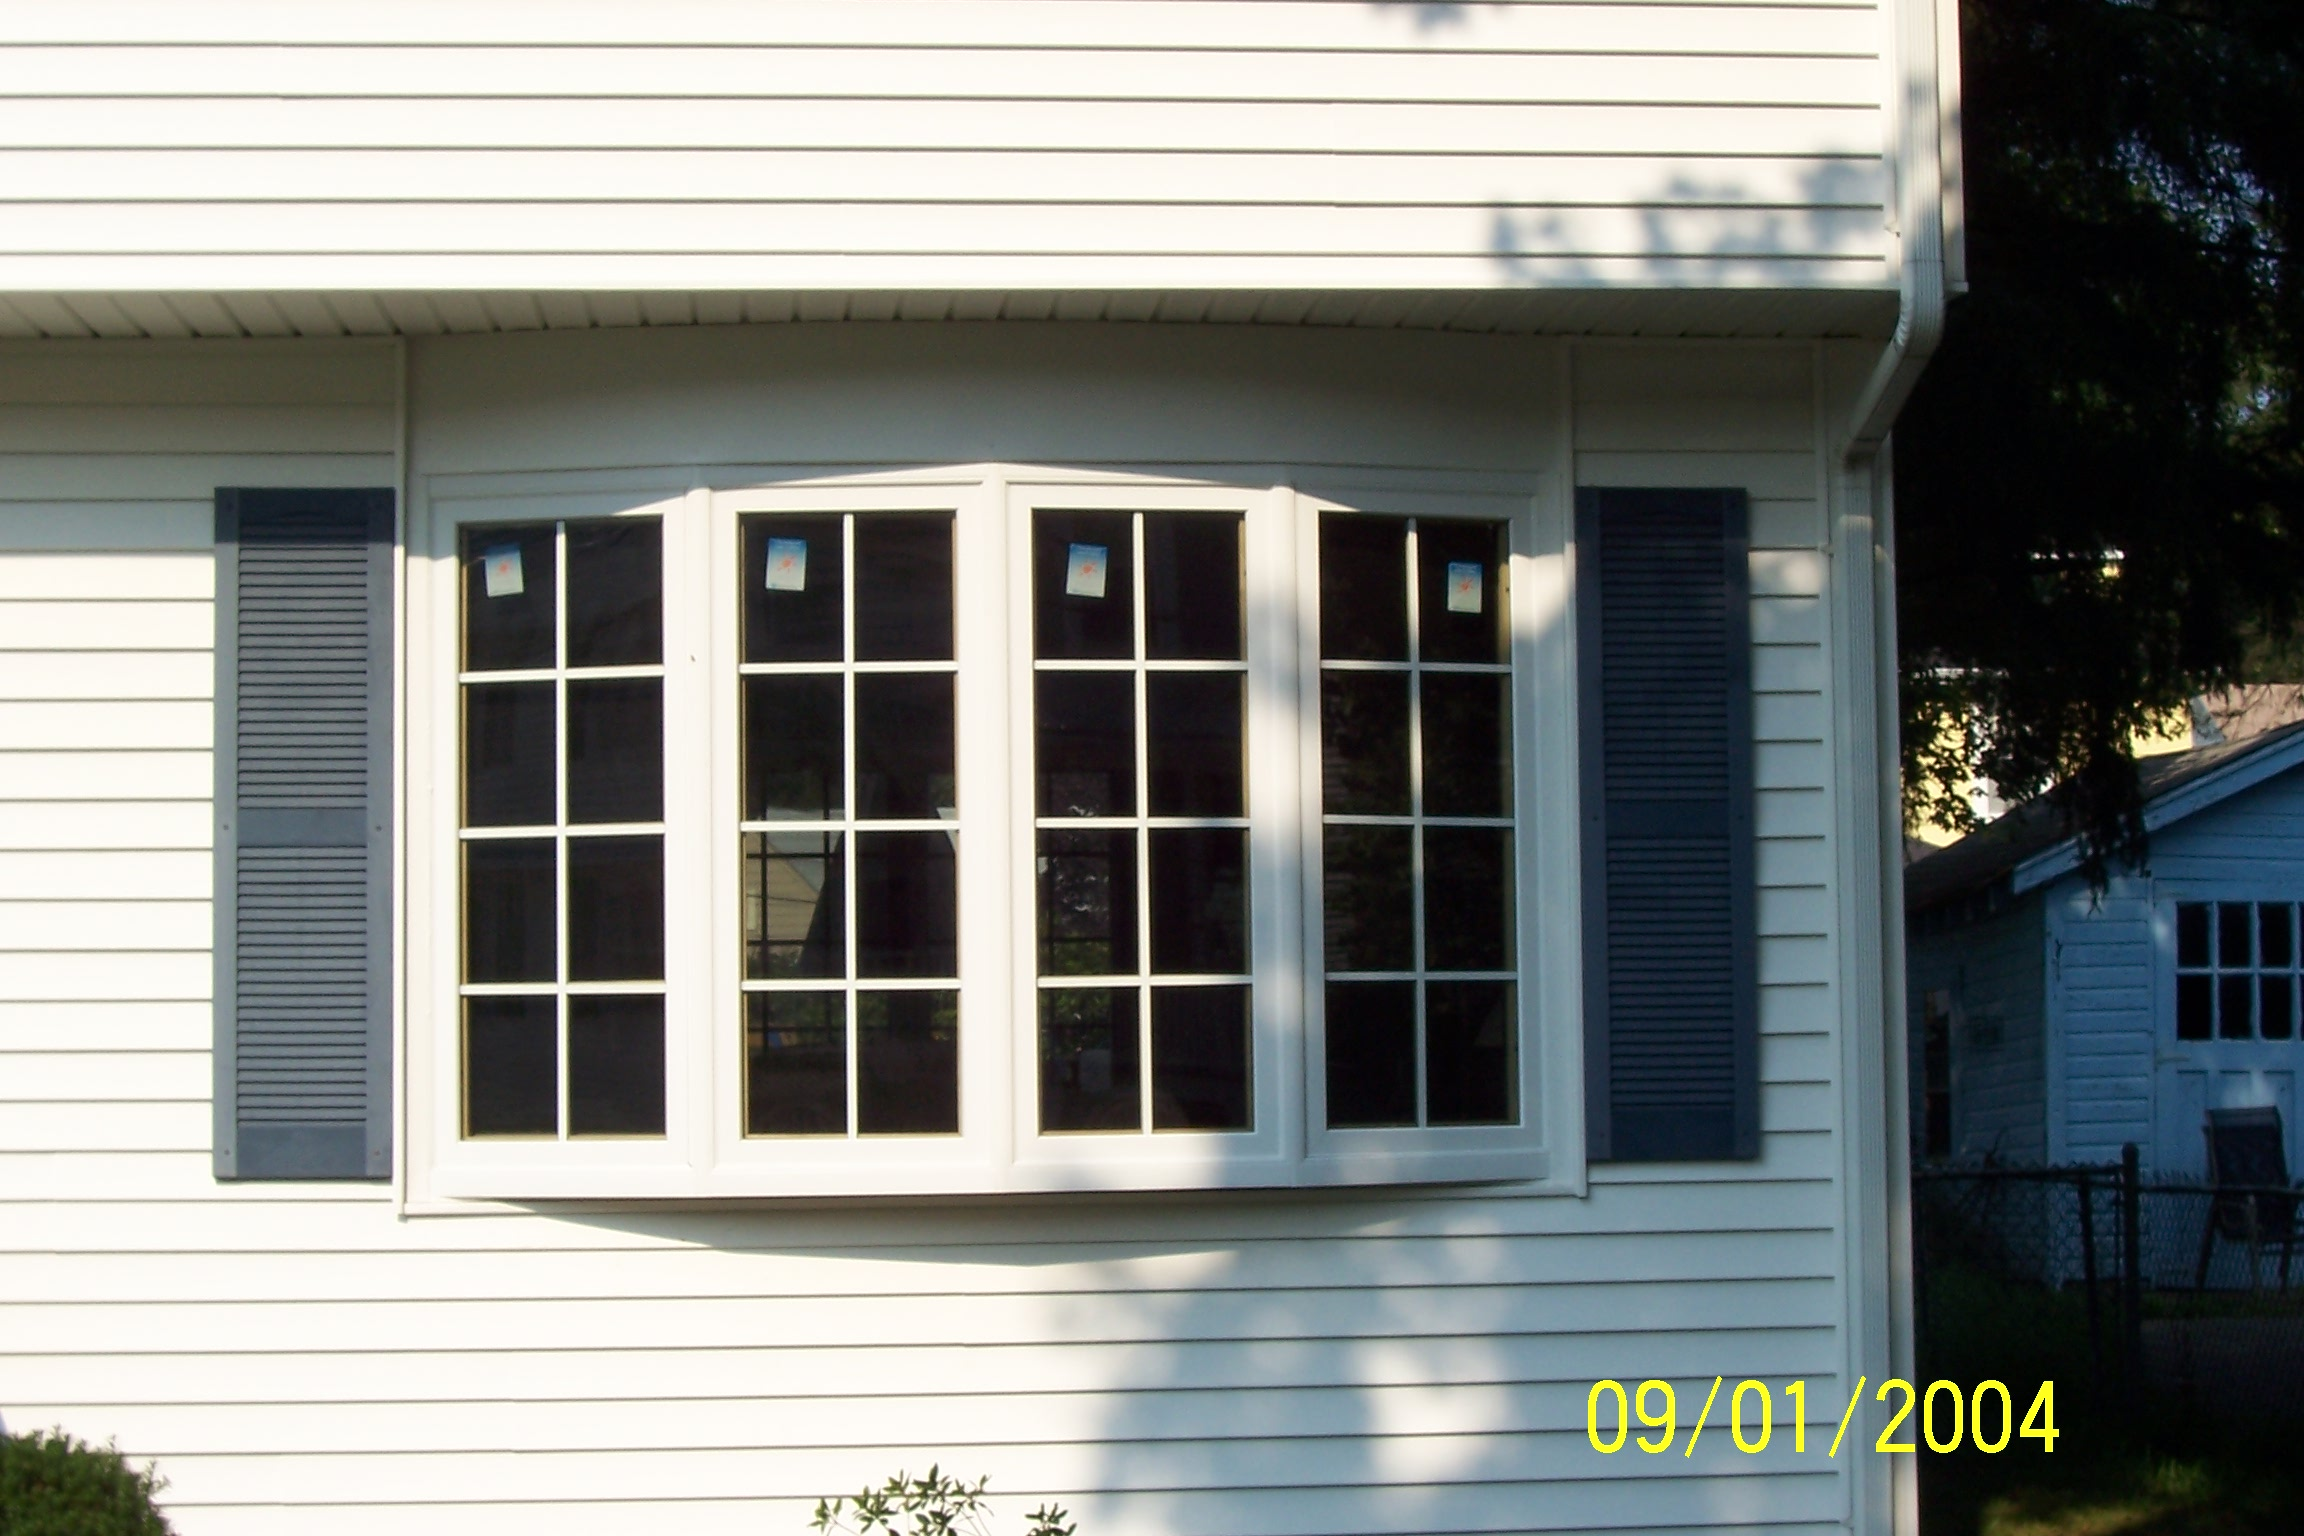 bowed windows bow windows tech bowed replacement bowed windows bow windows tech bow windows tech bowed